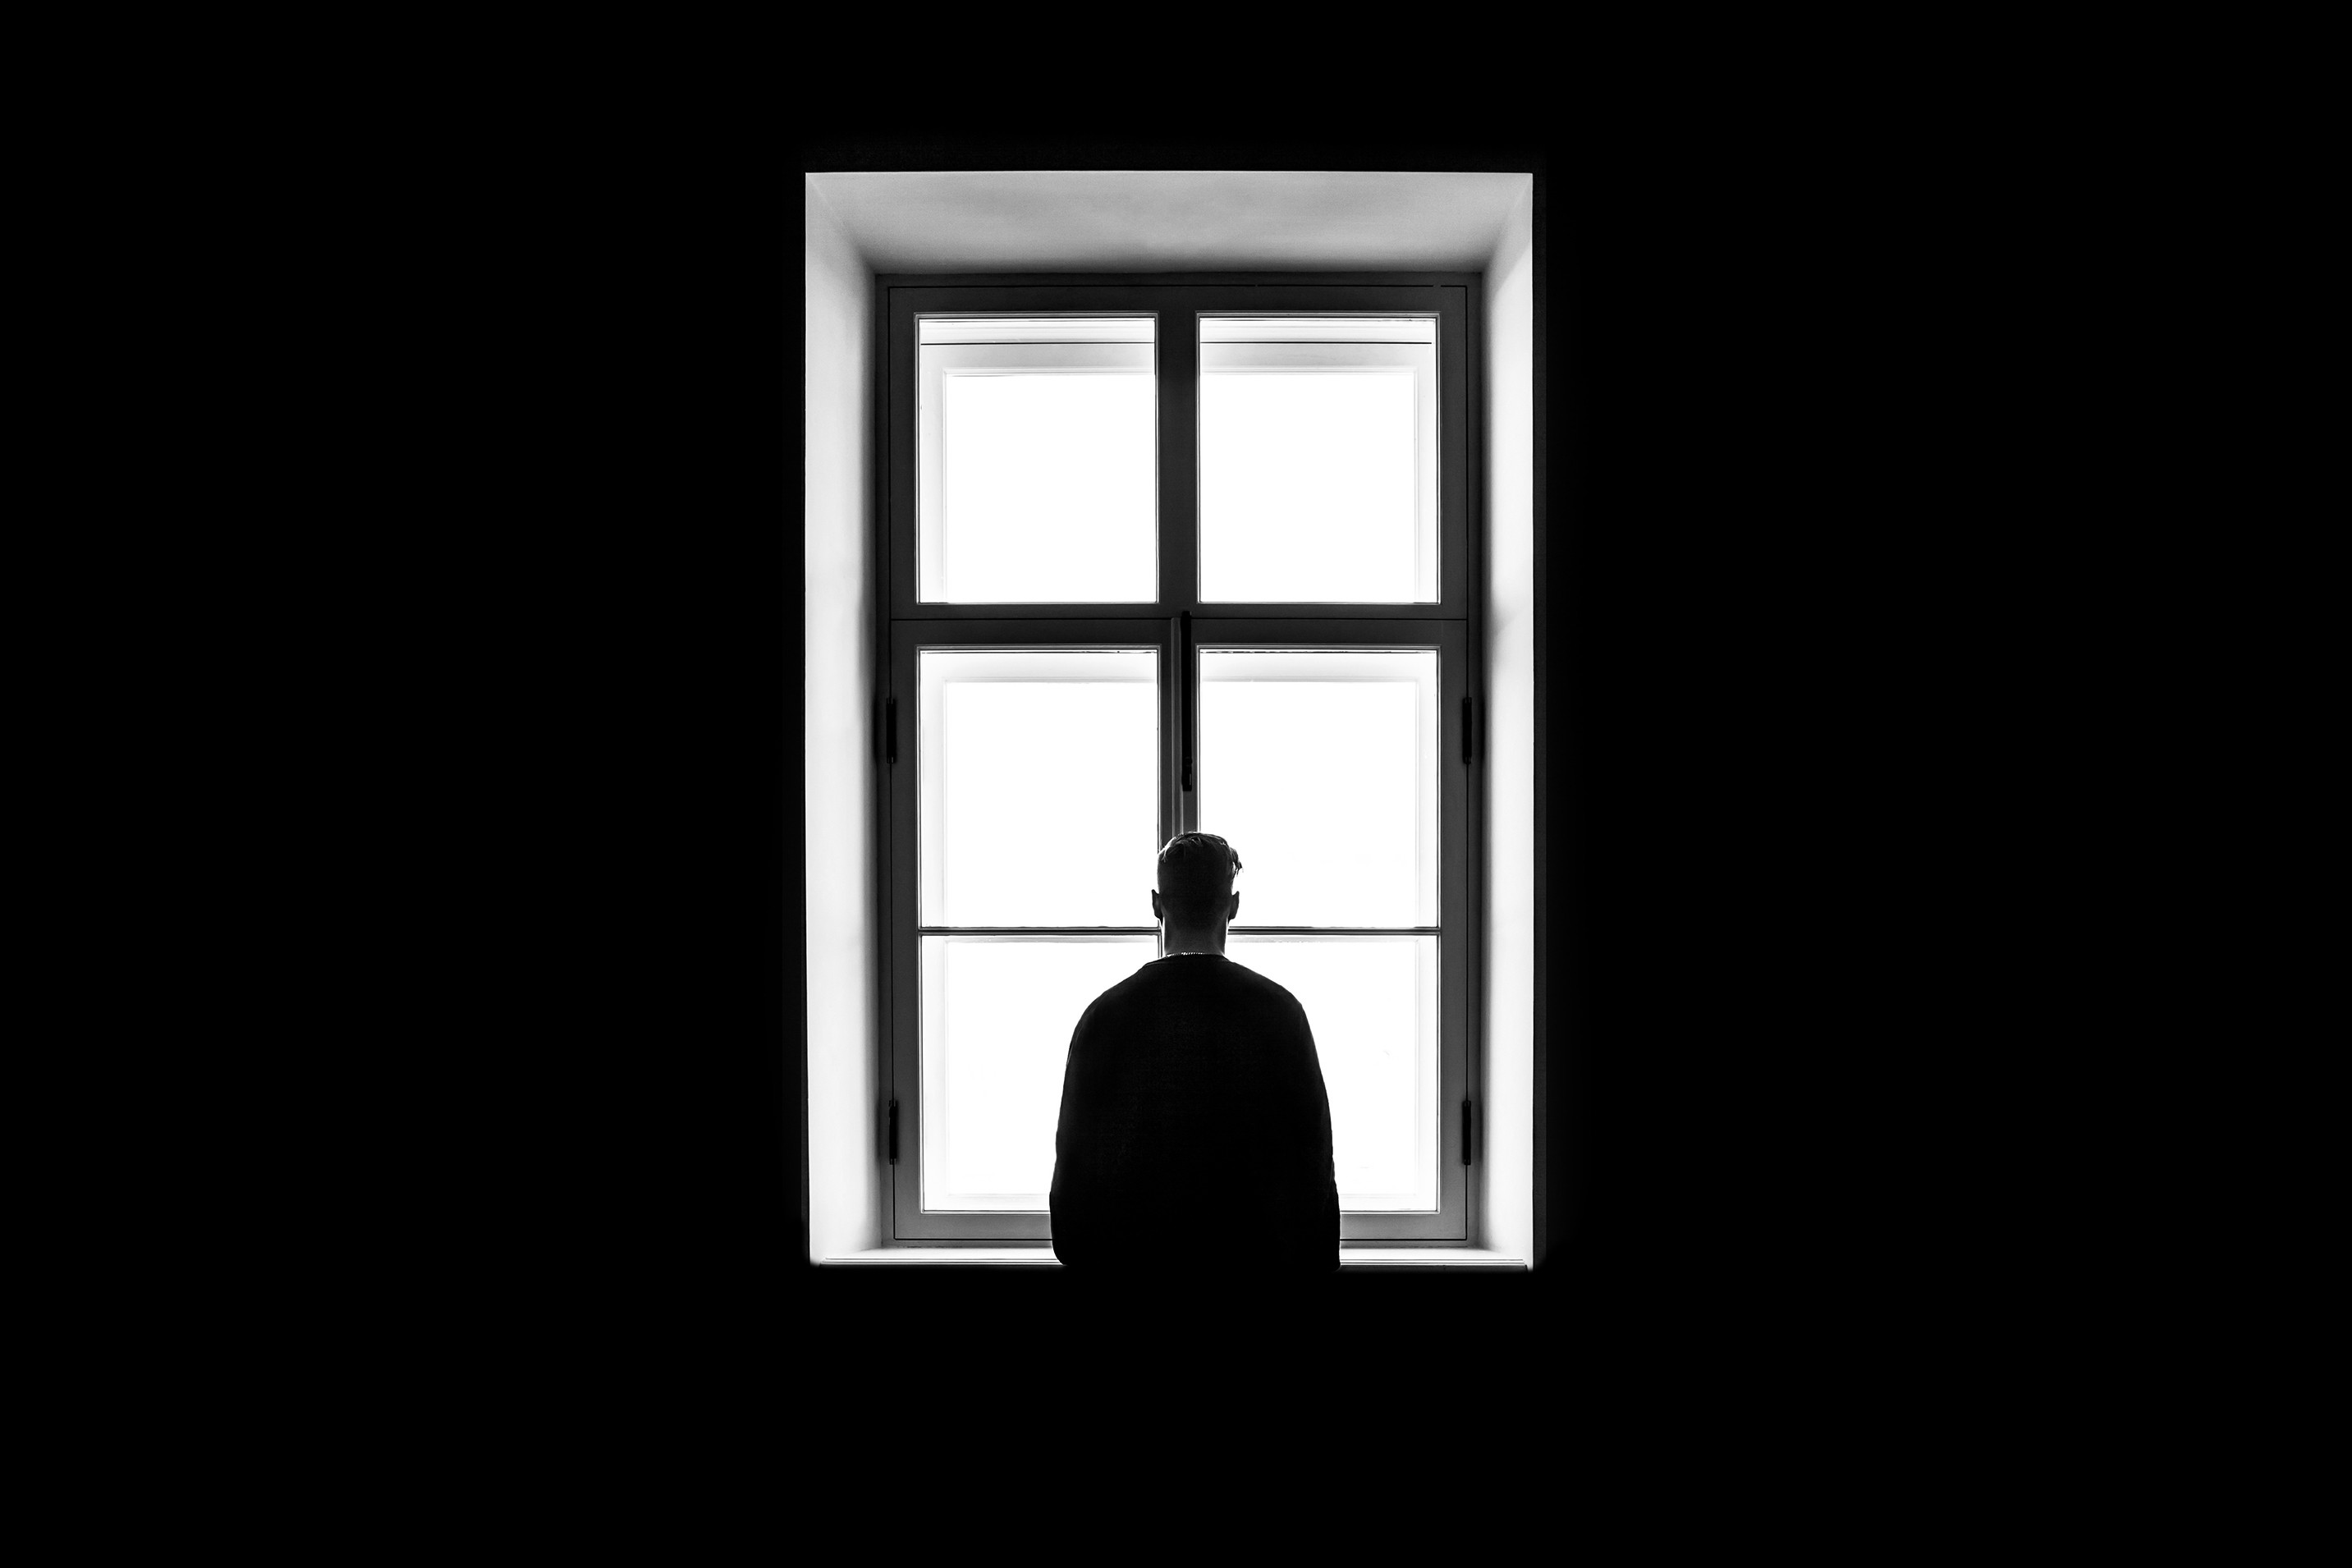 black and white picture of a man lost in thoughts in front of a window